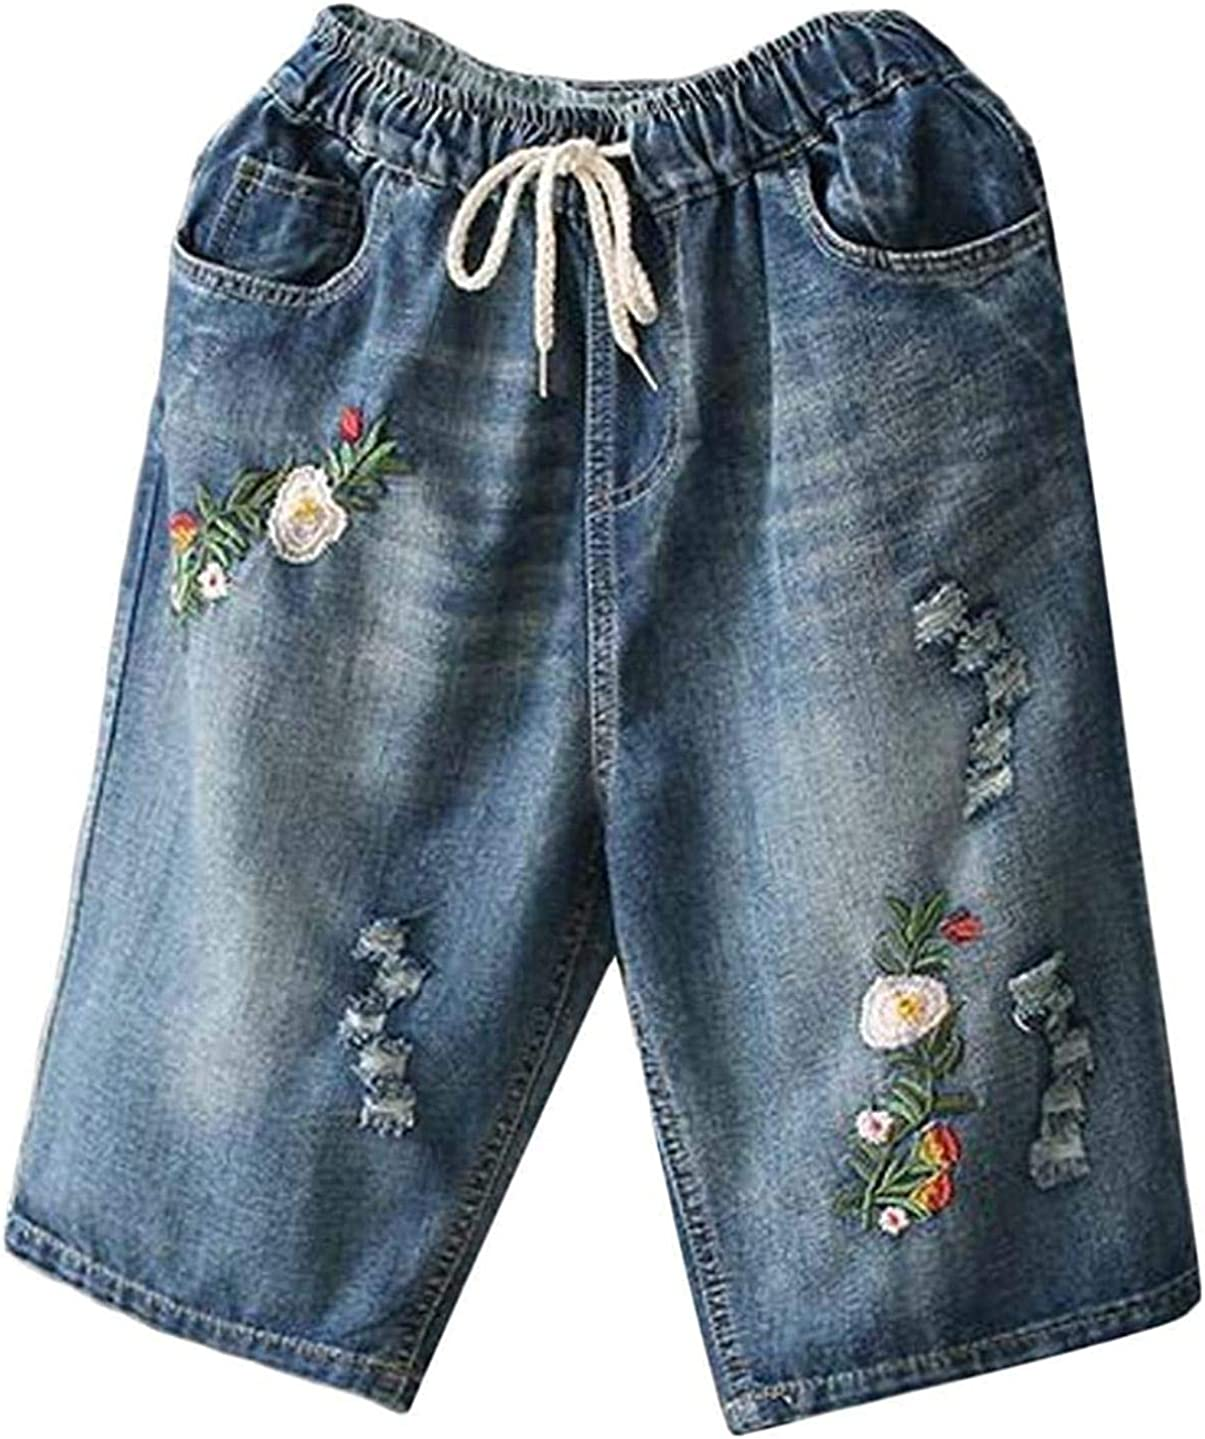 Womens Floral Embroidery Loose Fit Summer Elastic Waist Bermuda Denim Shorts Jeans